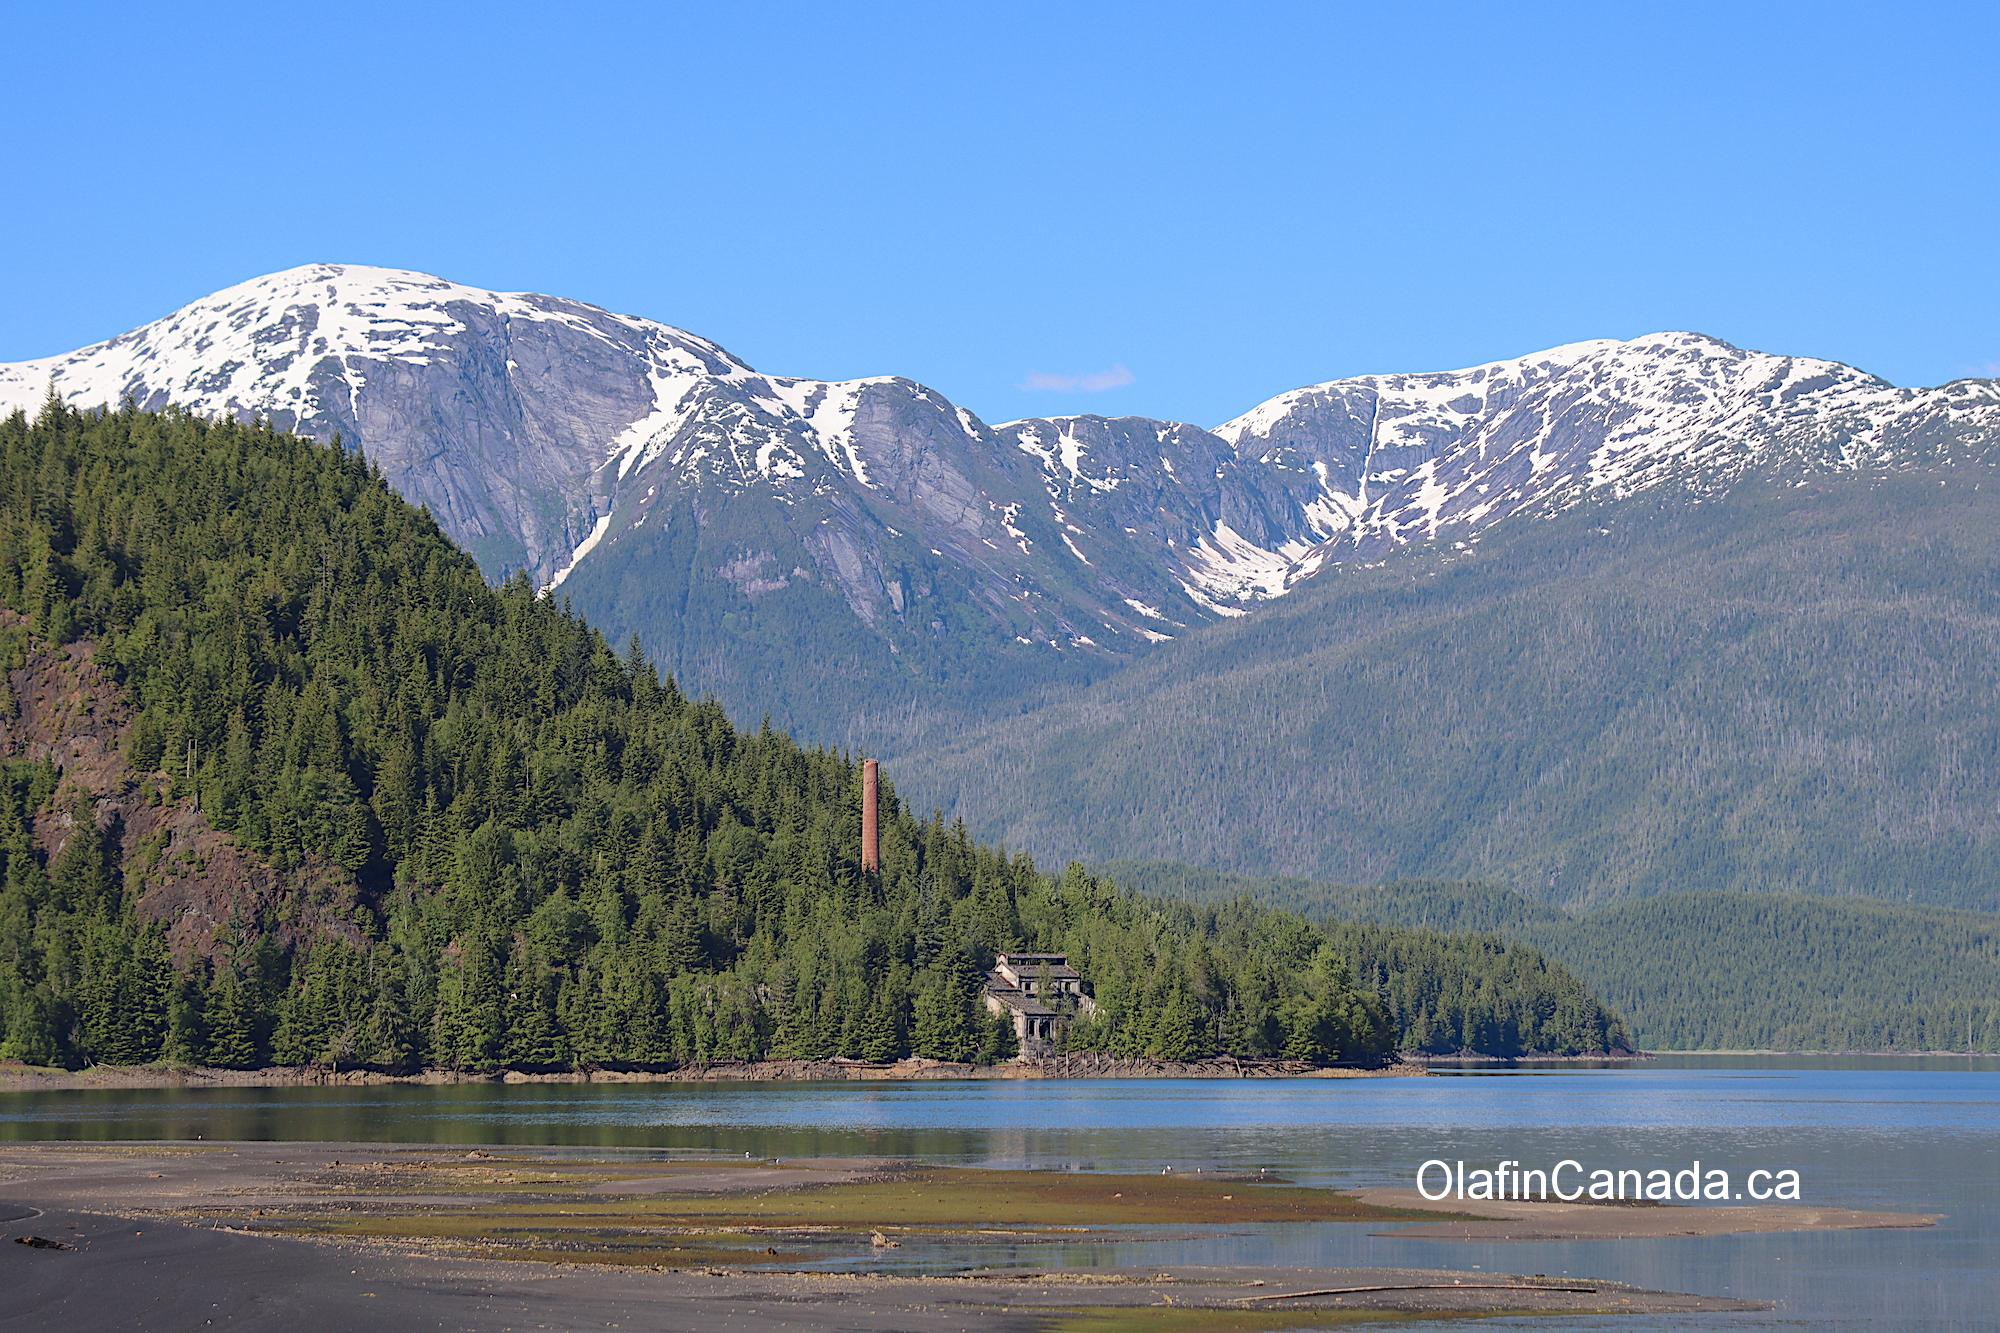 Mountain view with the coke plant in the foreground #olafincanada #britishcolumbia #discoverbc #abandonedbc #anyox